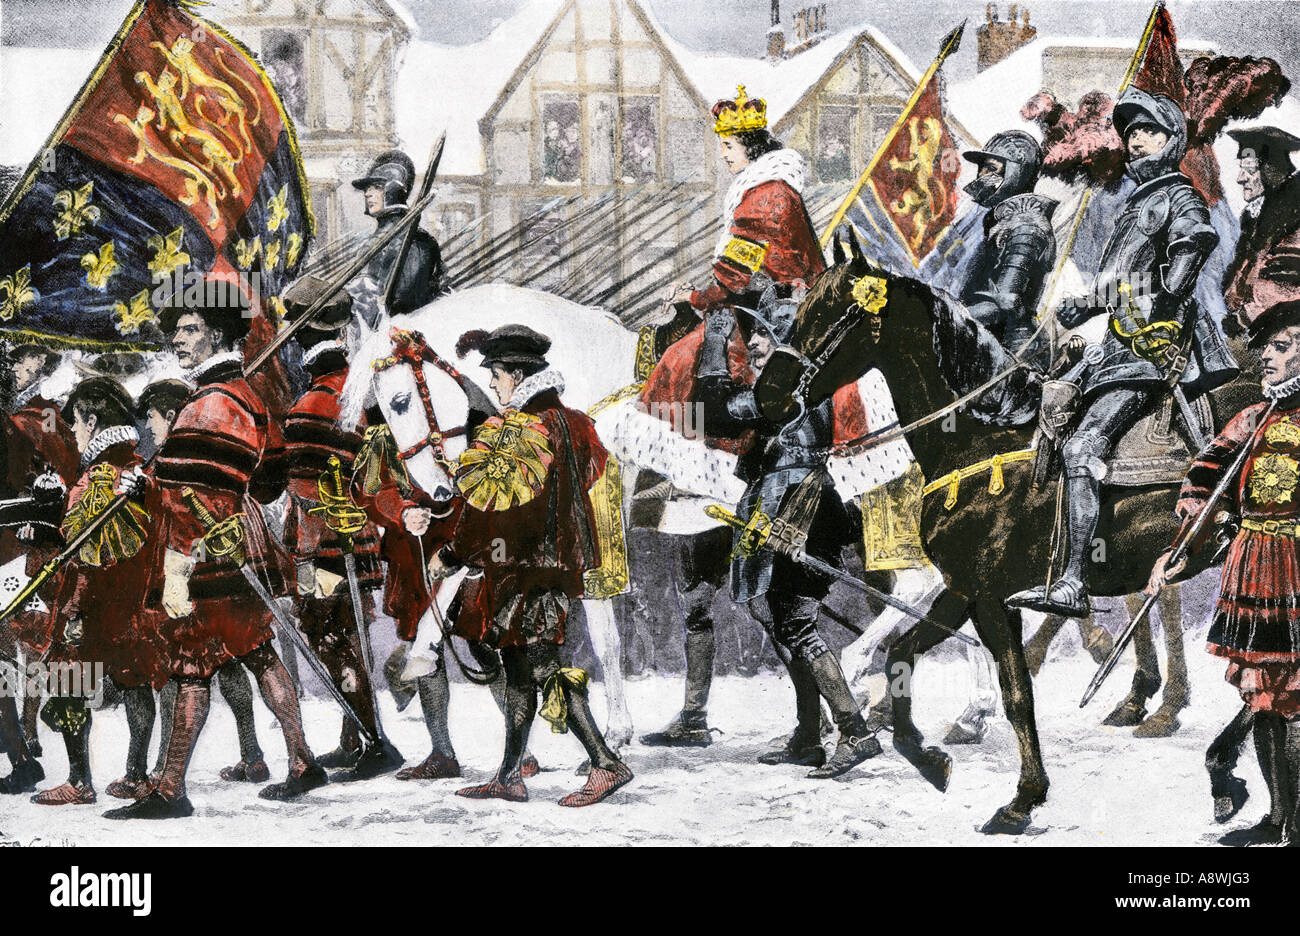 Edward VI entering London in his coronation procession 1547. Hand-colored halftone of an illustration - Stock Image